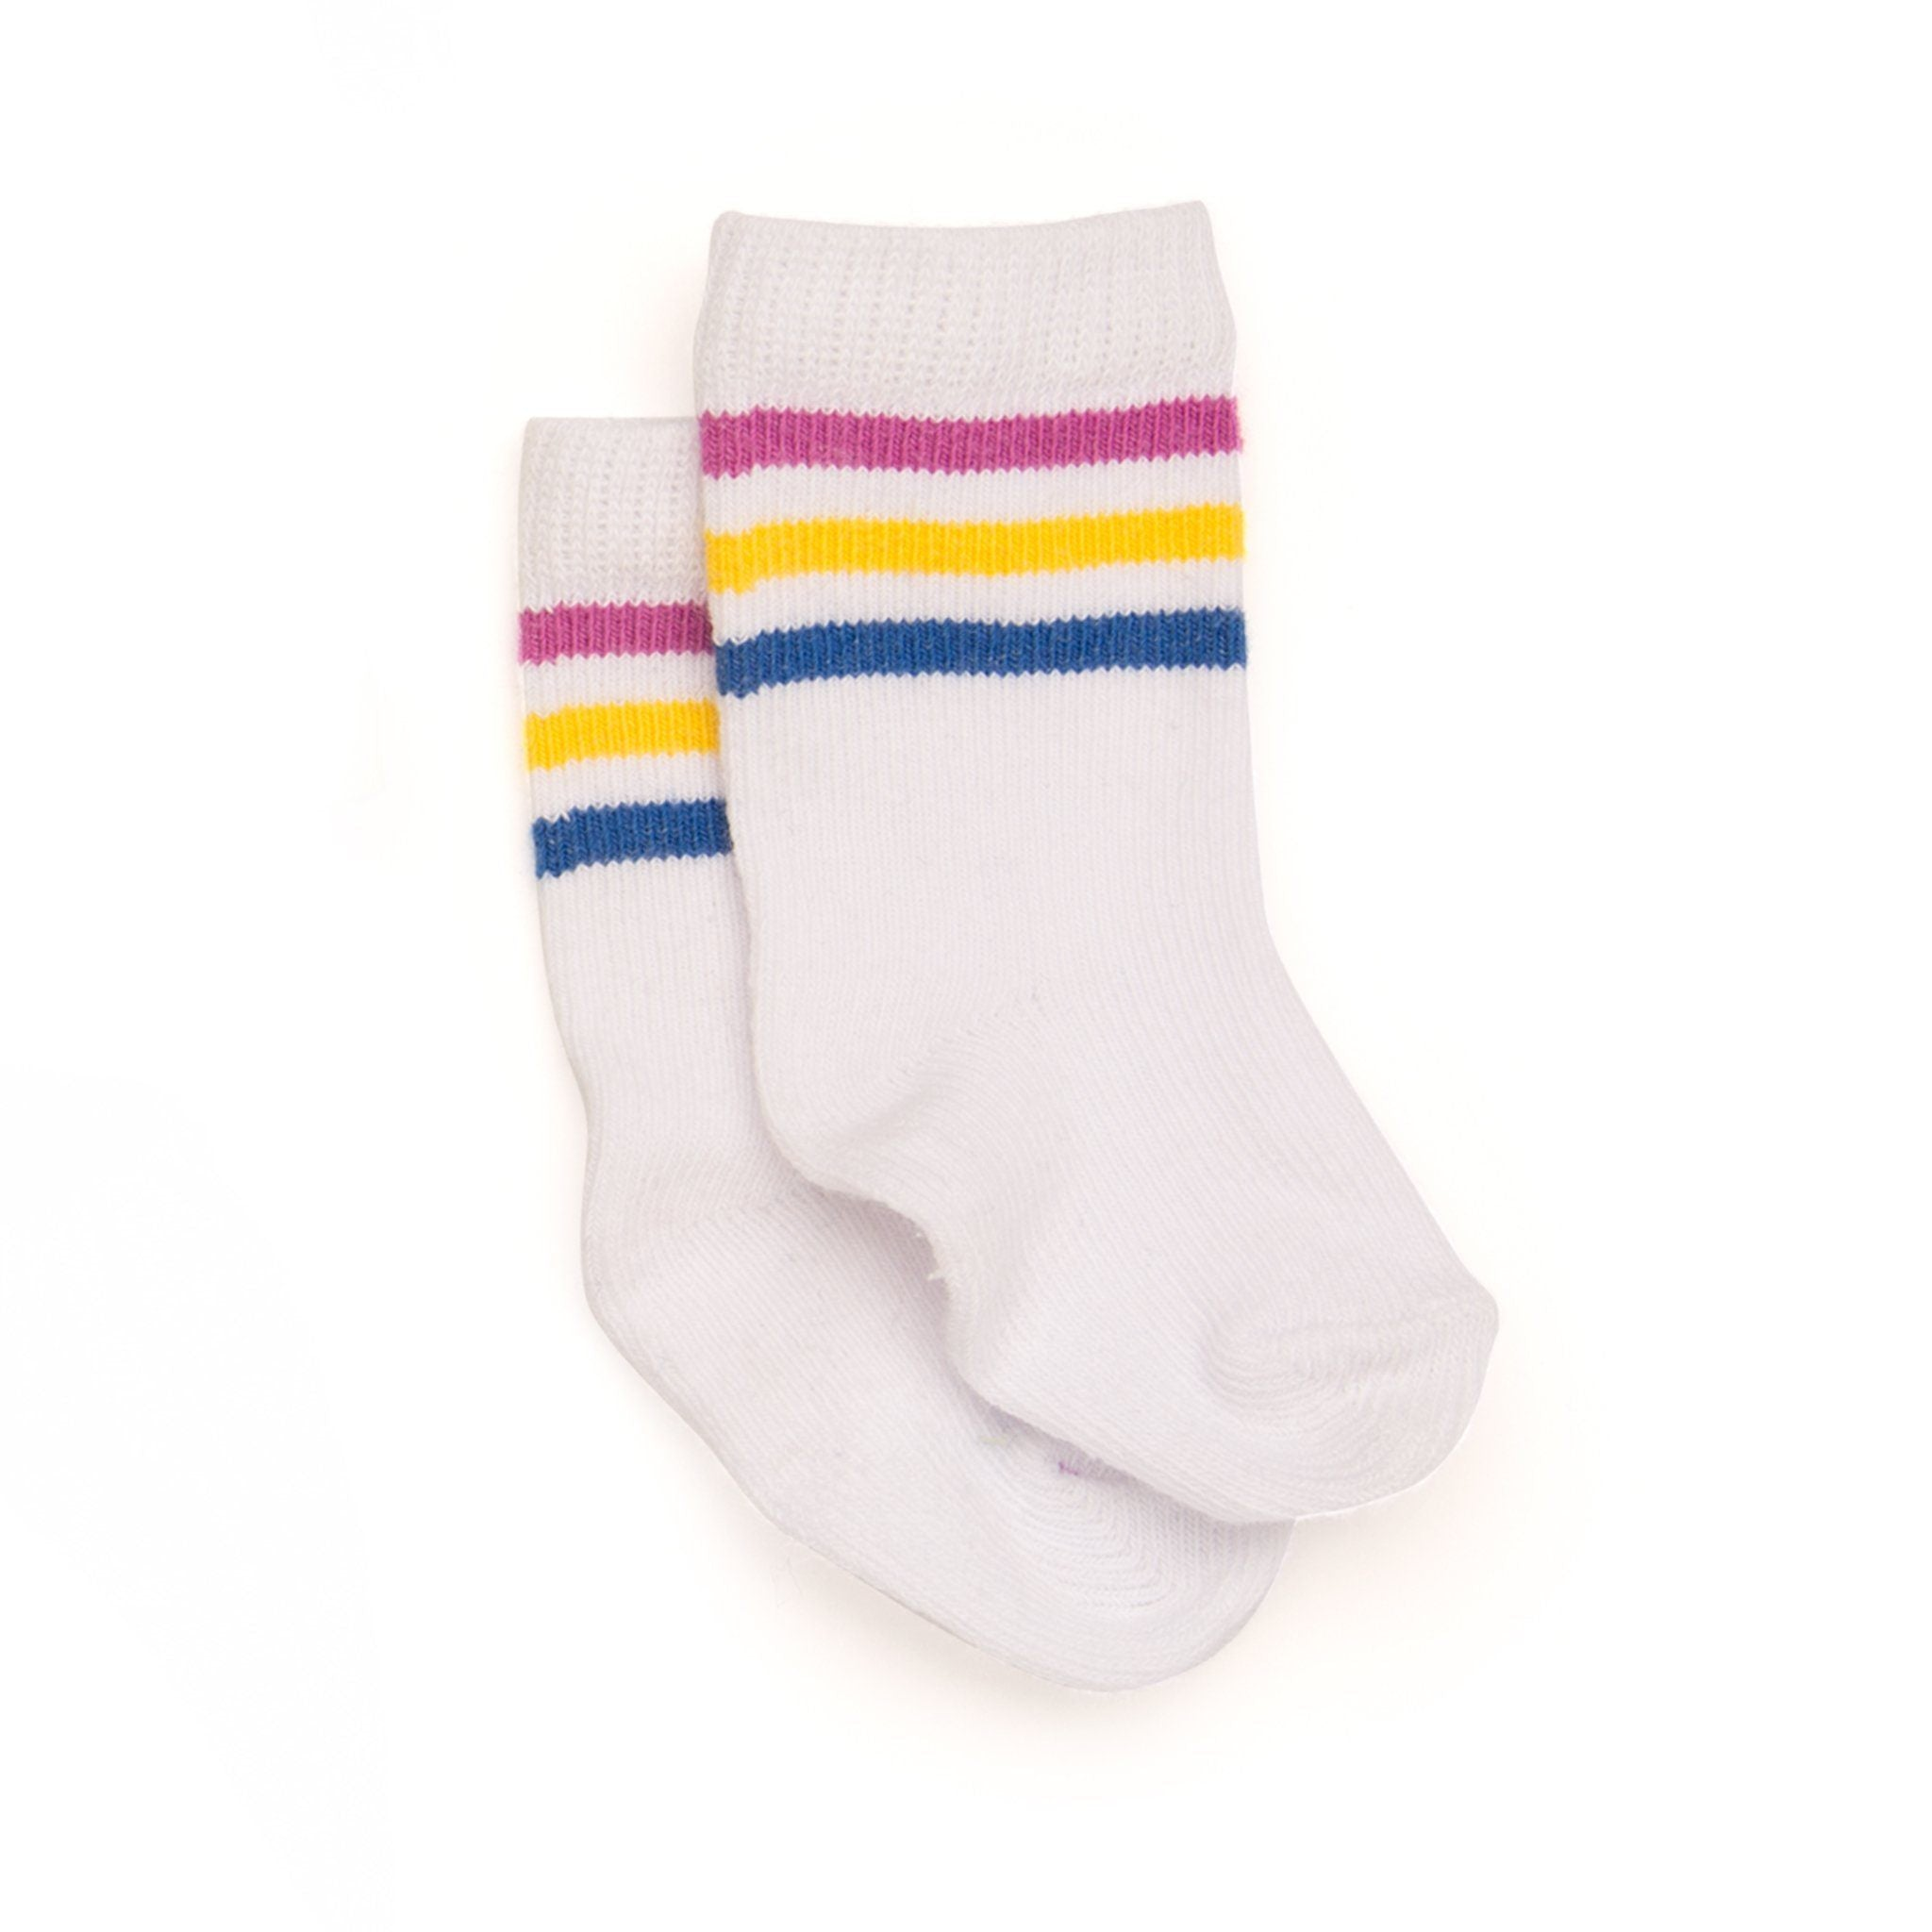 Camp Style striped socks fits all 18 inch dolls.